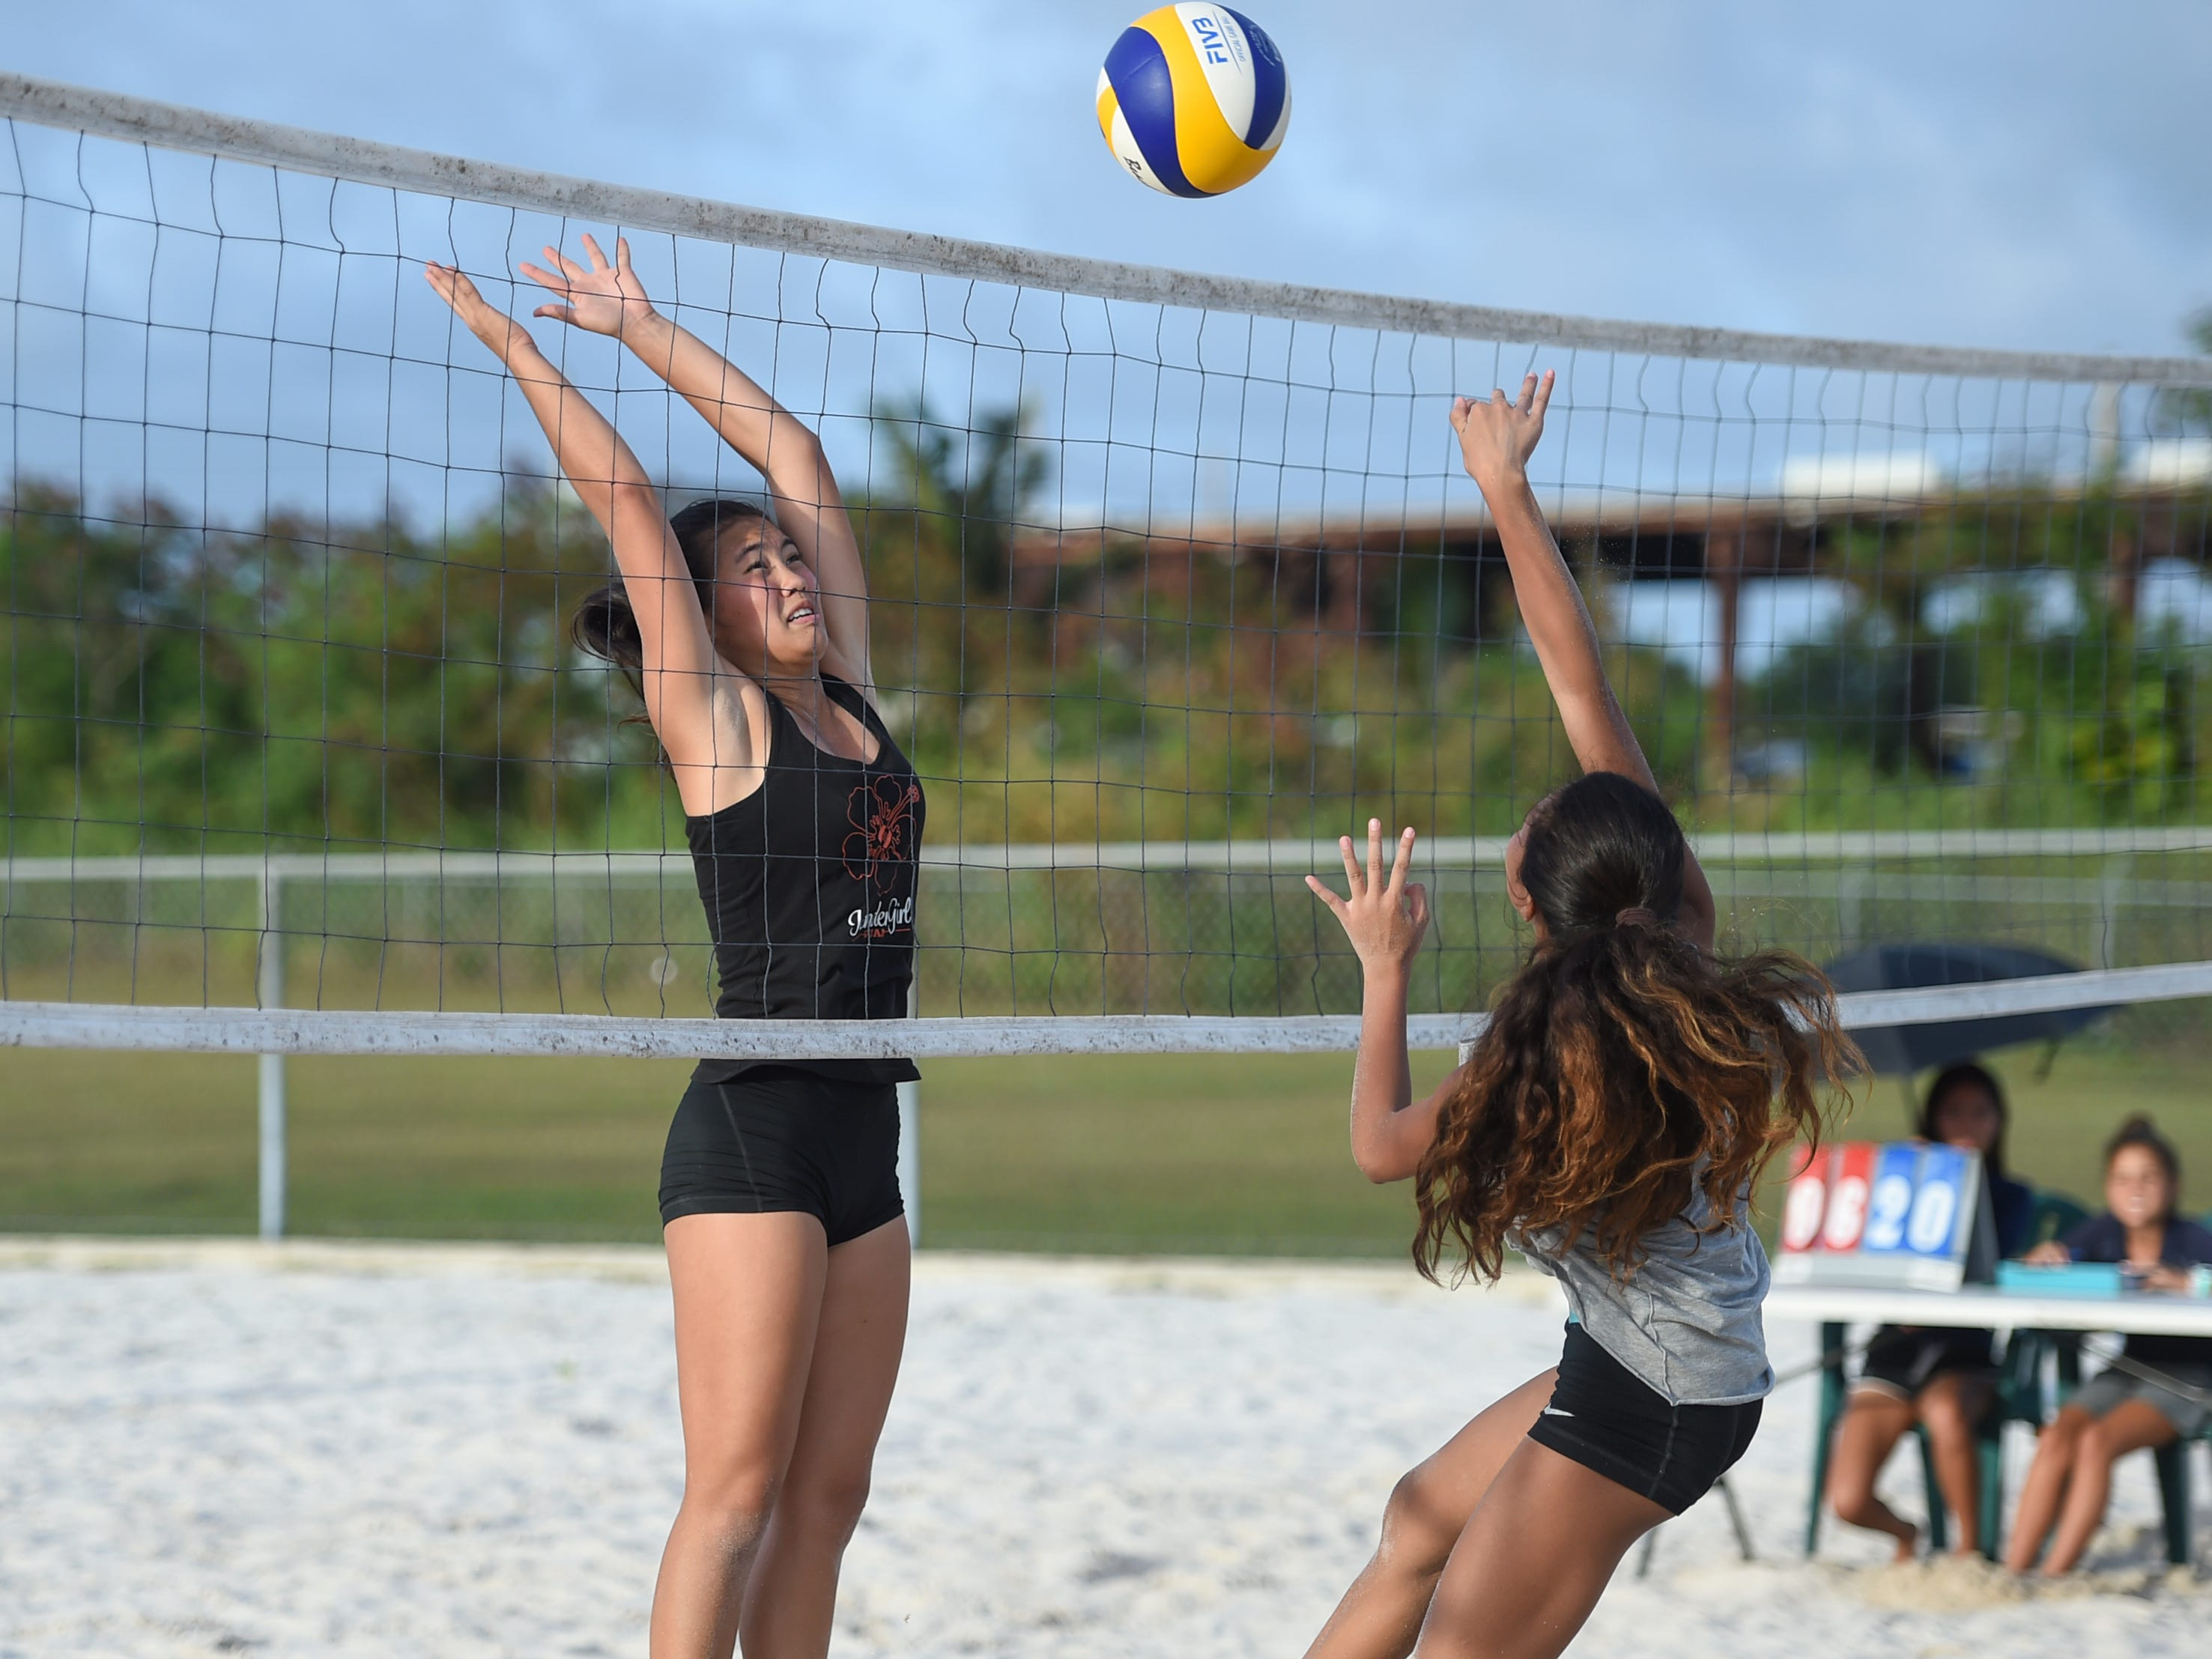 Hallie Wigsten, left, attempts to block a spike from Yasmeen Lopez during the IIAAG Beach Volleyball championship game at the Guam Football Association National Training Center in Dededo, March 12, 2019.